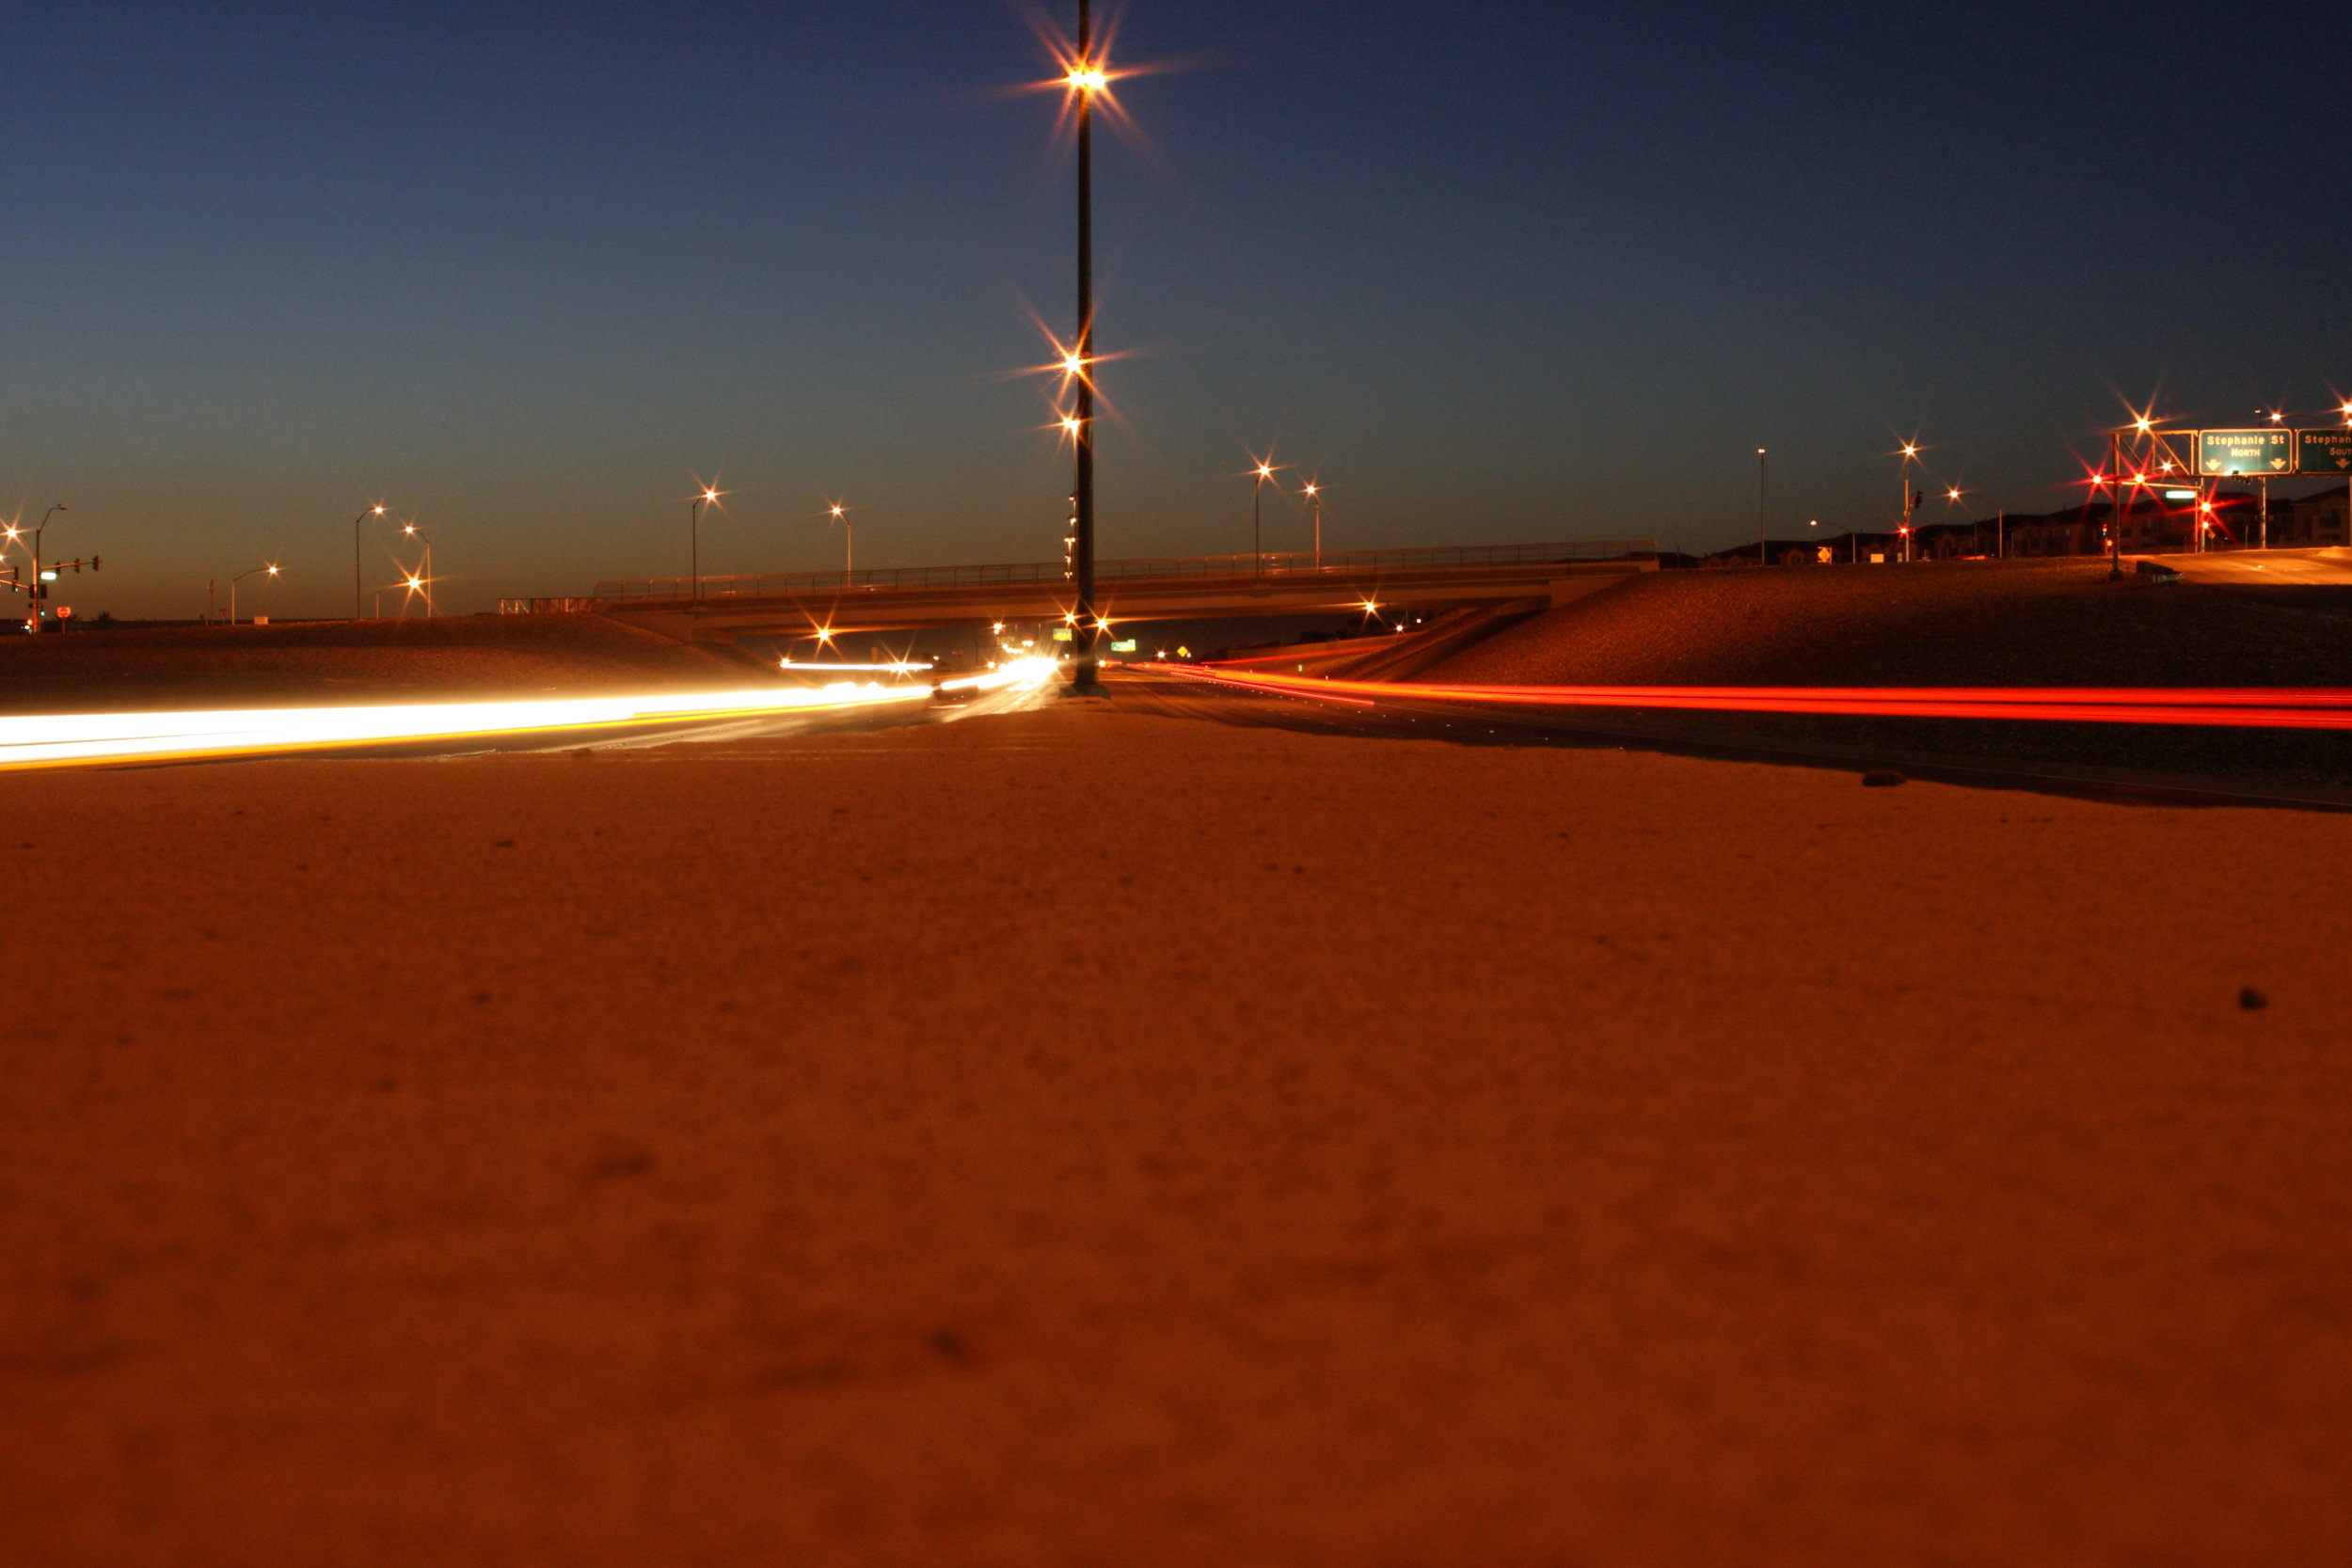 Here is an 8 s exposure at f18. The camera was sitting on the median and I used a self timer because I did not have a remote.